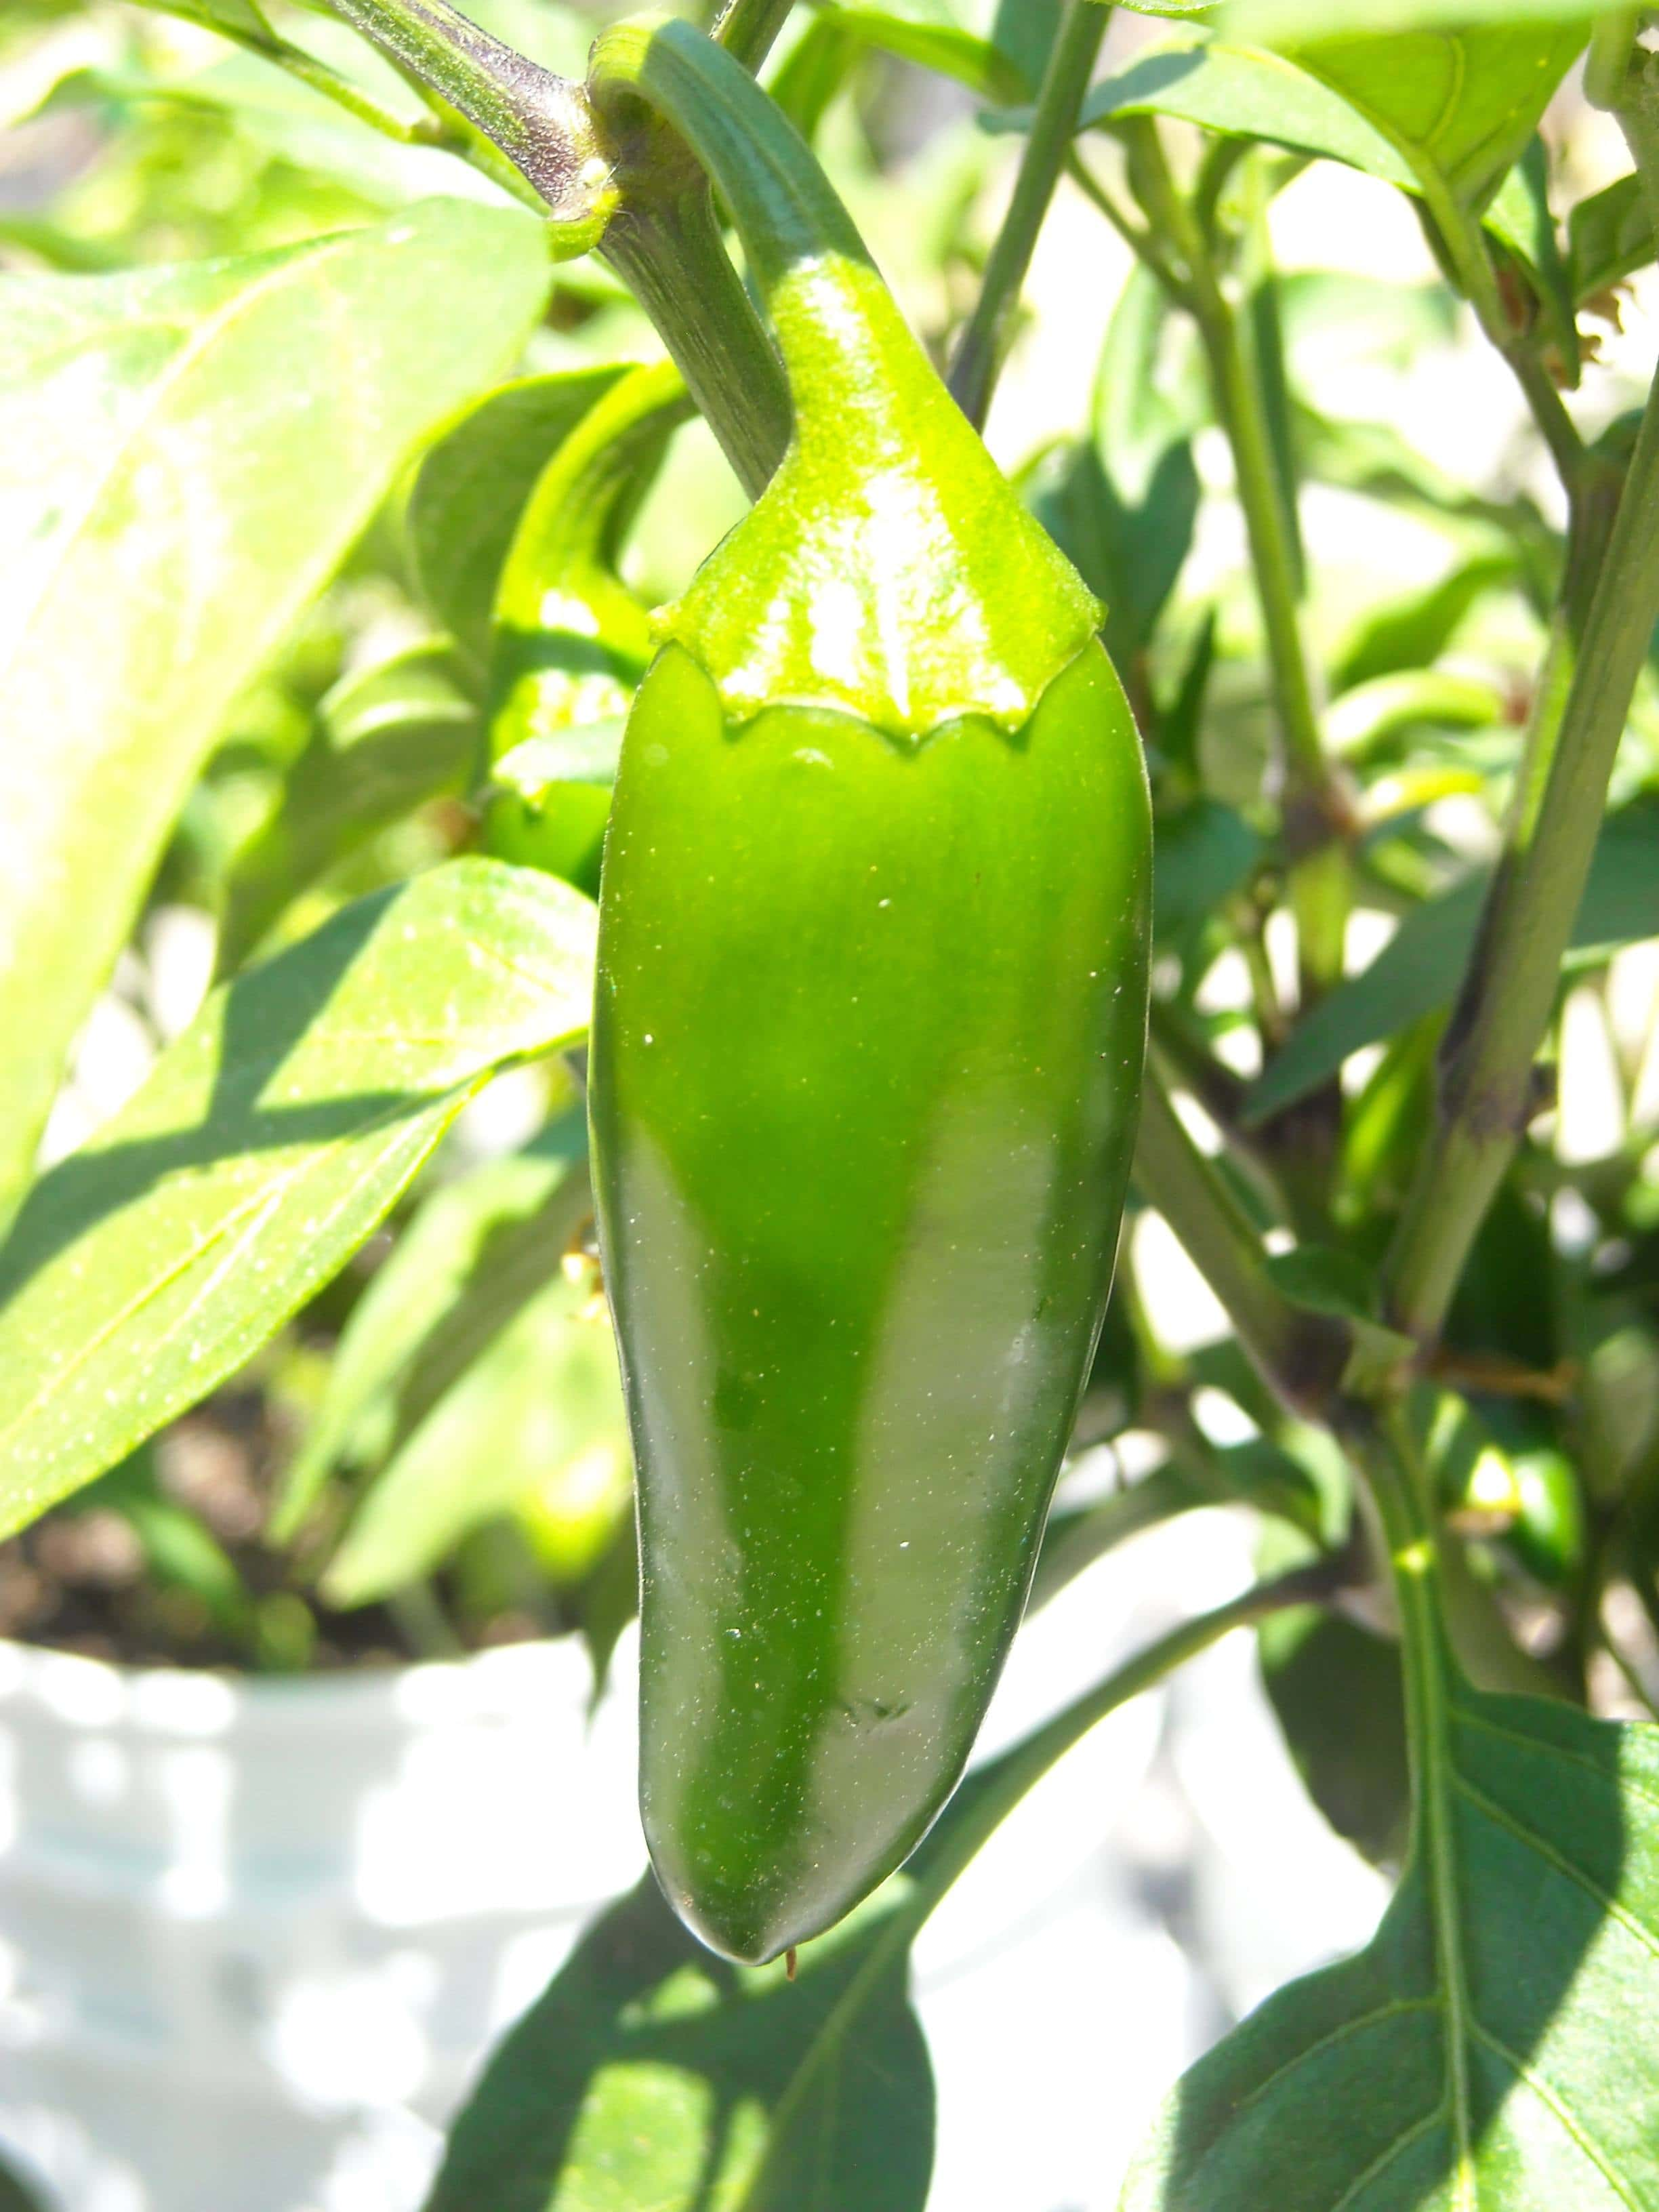 Mucho nacho jalapeno growing on pepper plant.